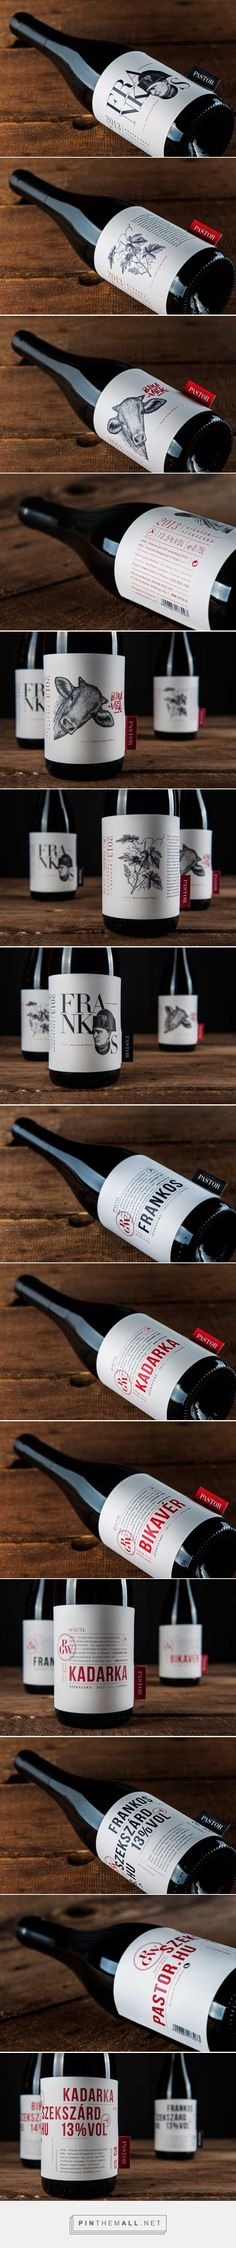 Pastor Winery's Red Wines – Packaging of the World – Pacchetto creativo Design Gal … - Ideas Debebidas Wine Bottle Design, Wine Label Design, Wine Bottle Labels, Food Packaging Design, Beverage Packaging, Bottle Packaging, Red Wine Drinks, Malta, Wine Brands